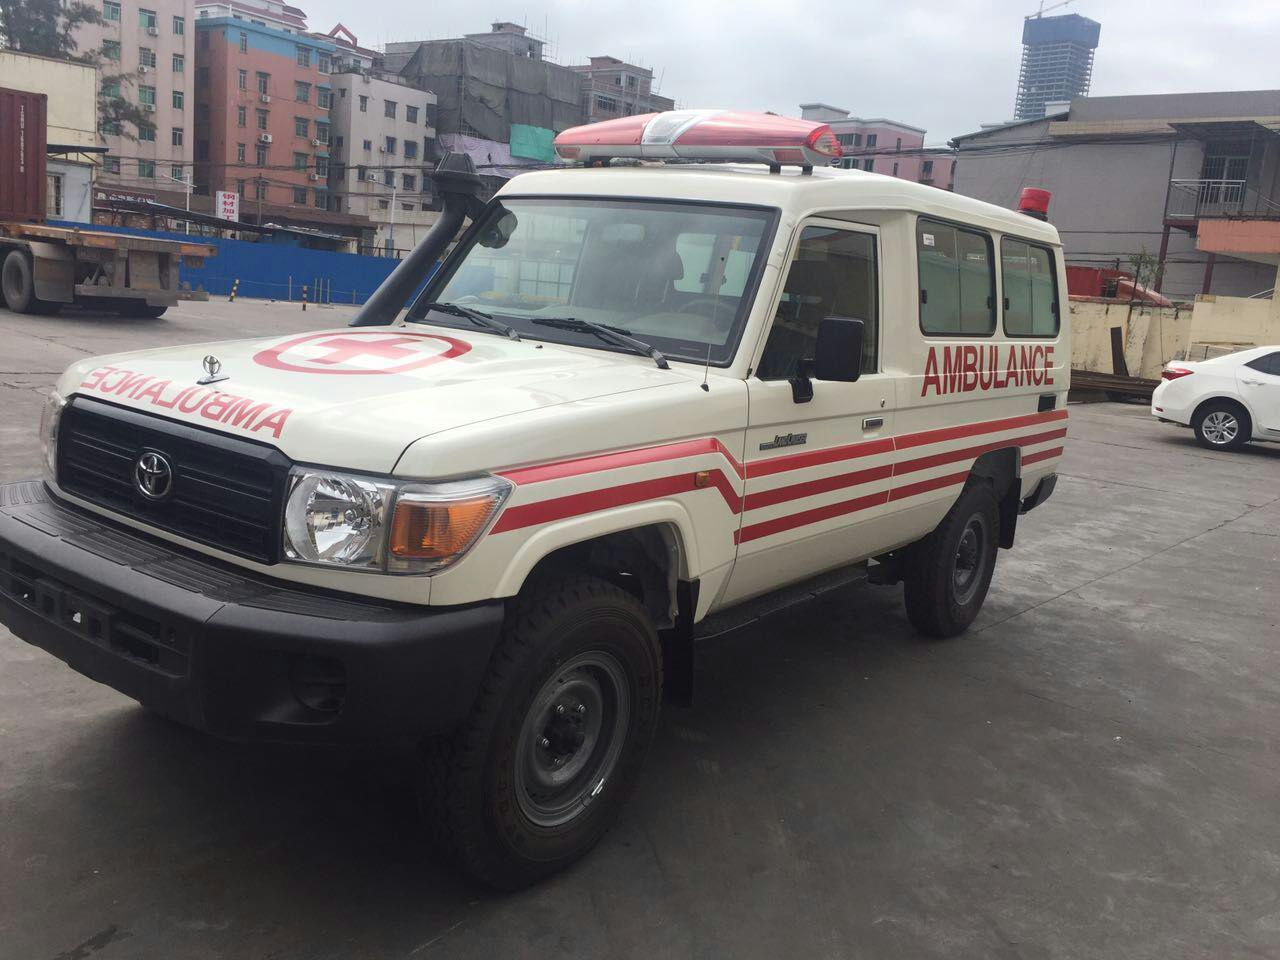 Toyota 4X4 Land Cruiser LC78L Hard Top Diesel Rhd Ambulance